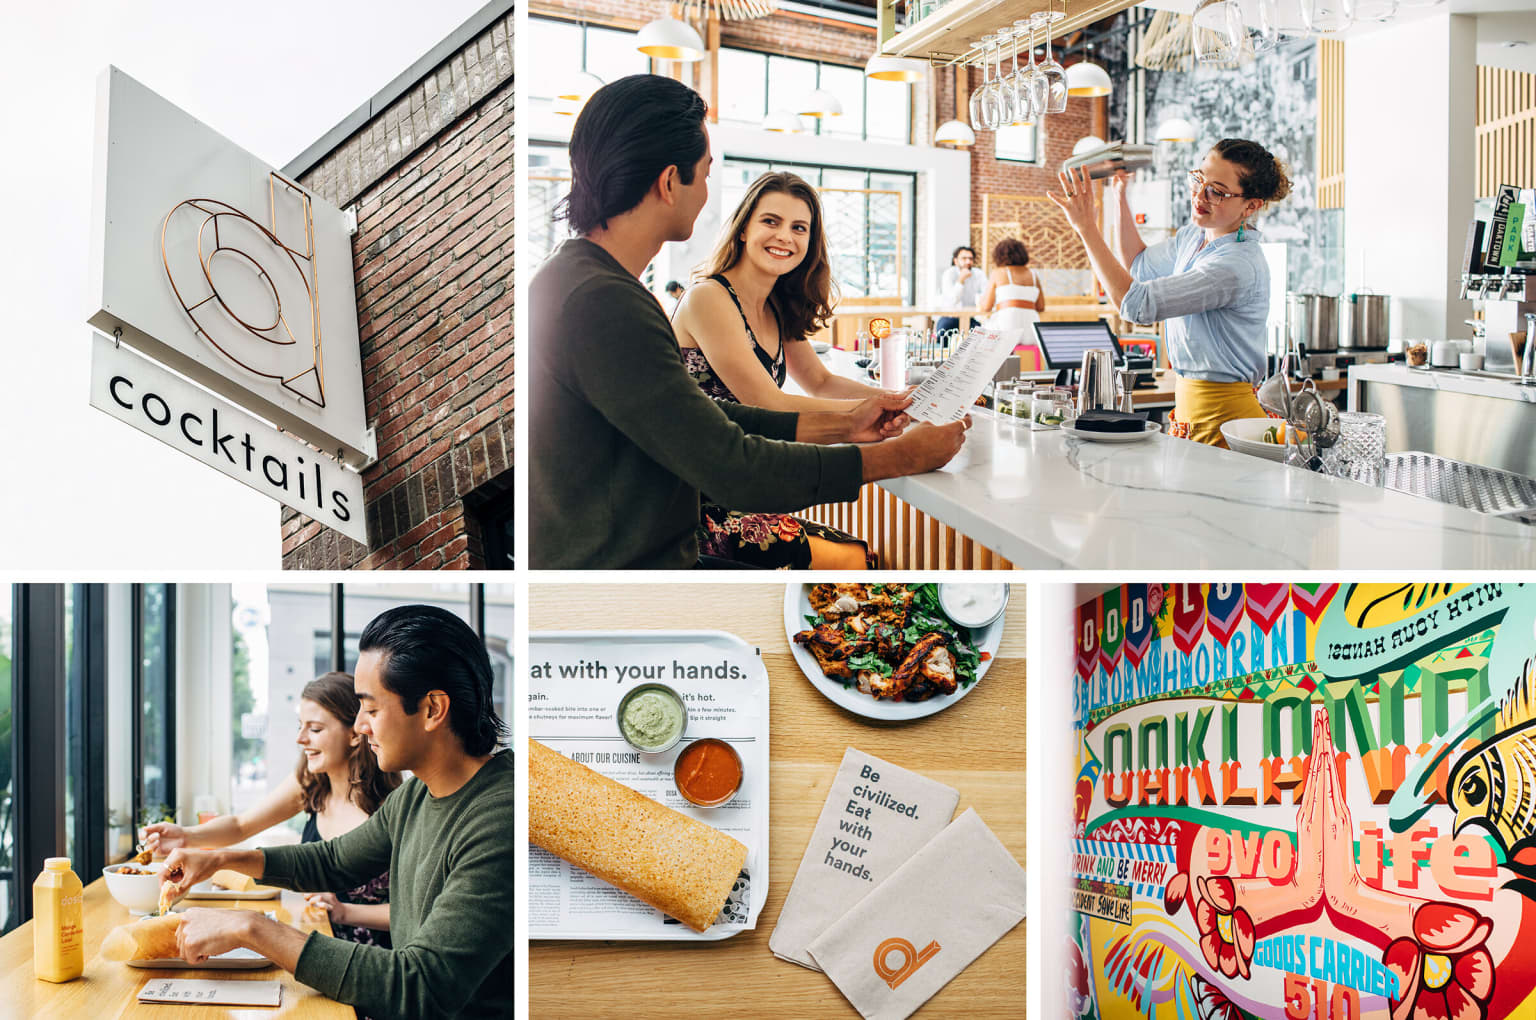 Defining a restaurant's brand, experience, and retail presence